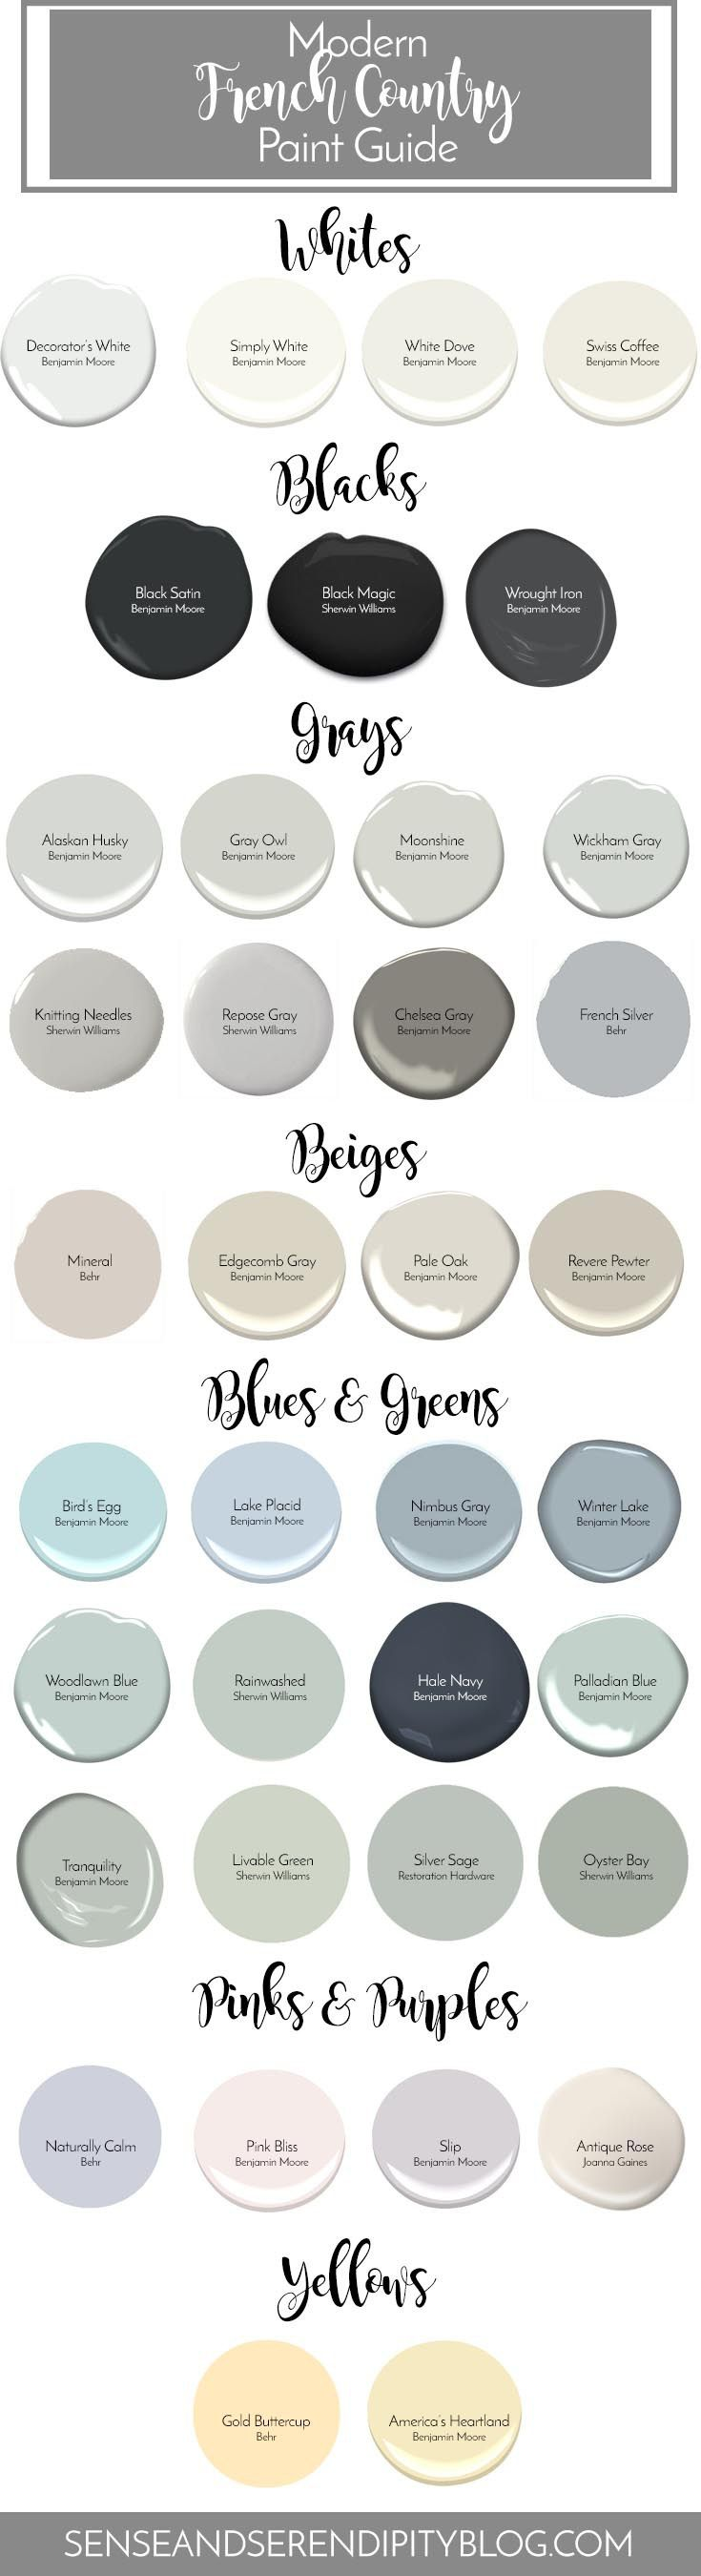 Joanna gaines master bedroom paint colors  Modern French Country Paint Guide  Modern french country